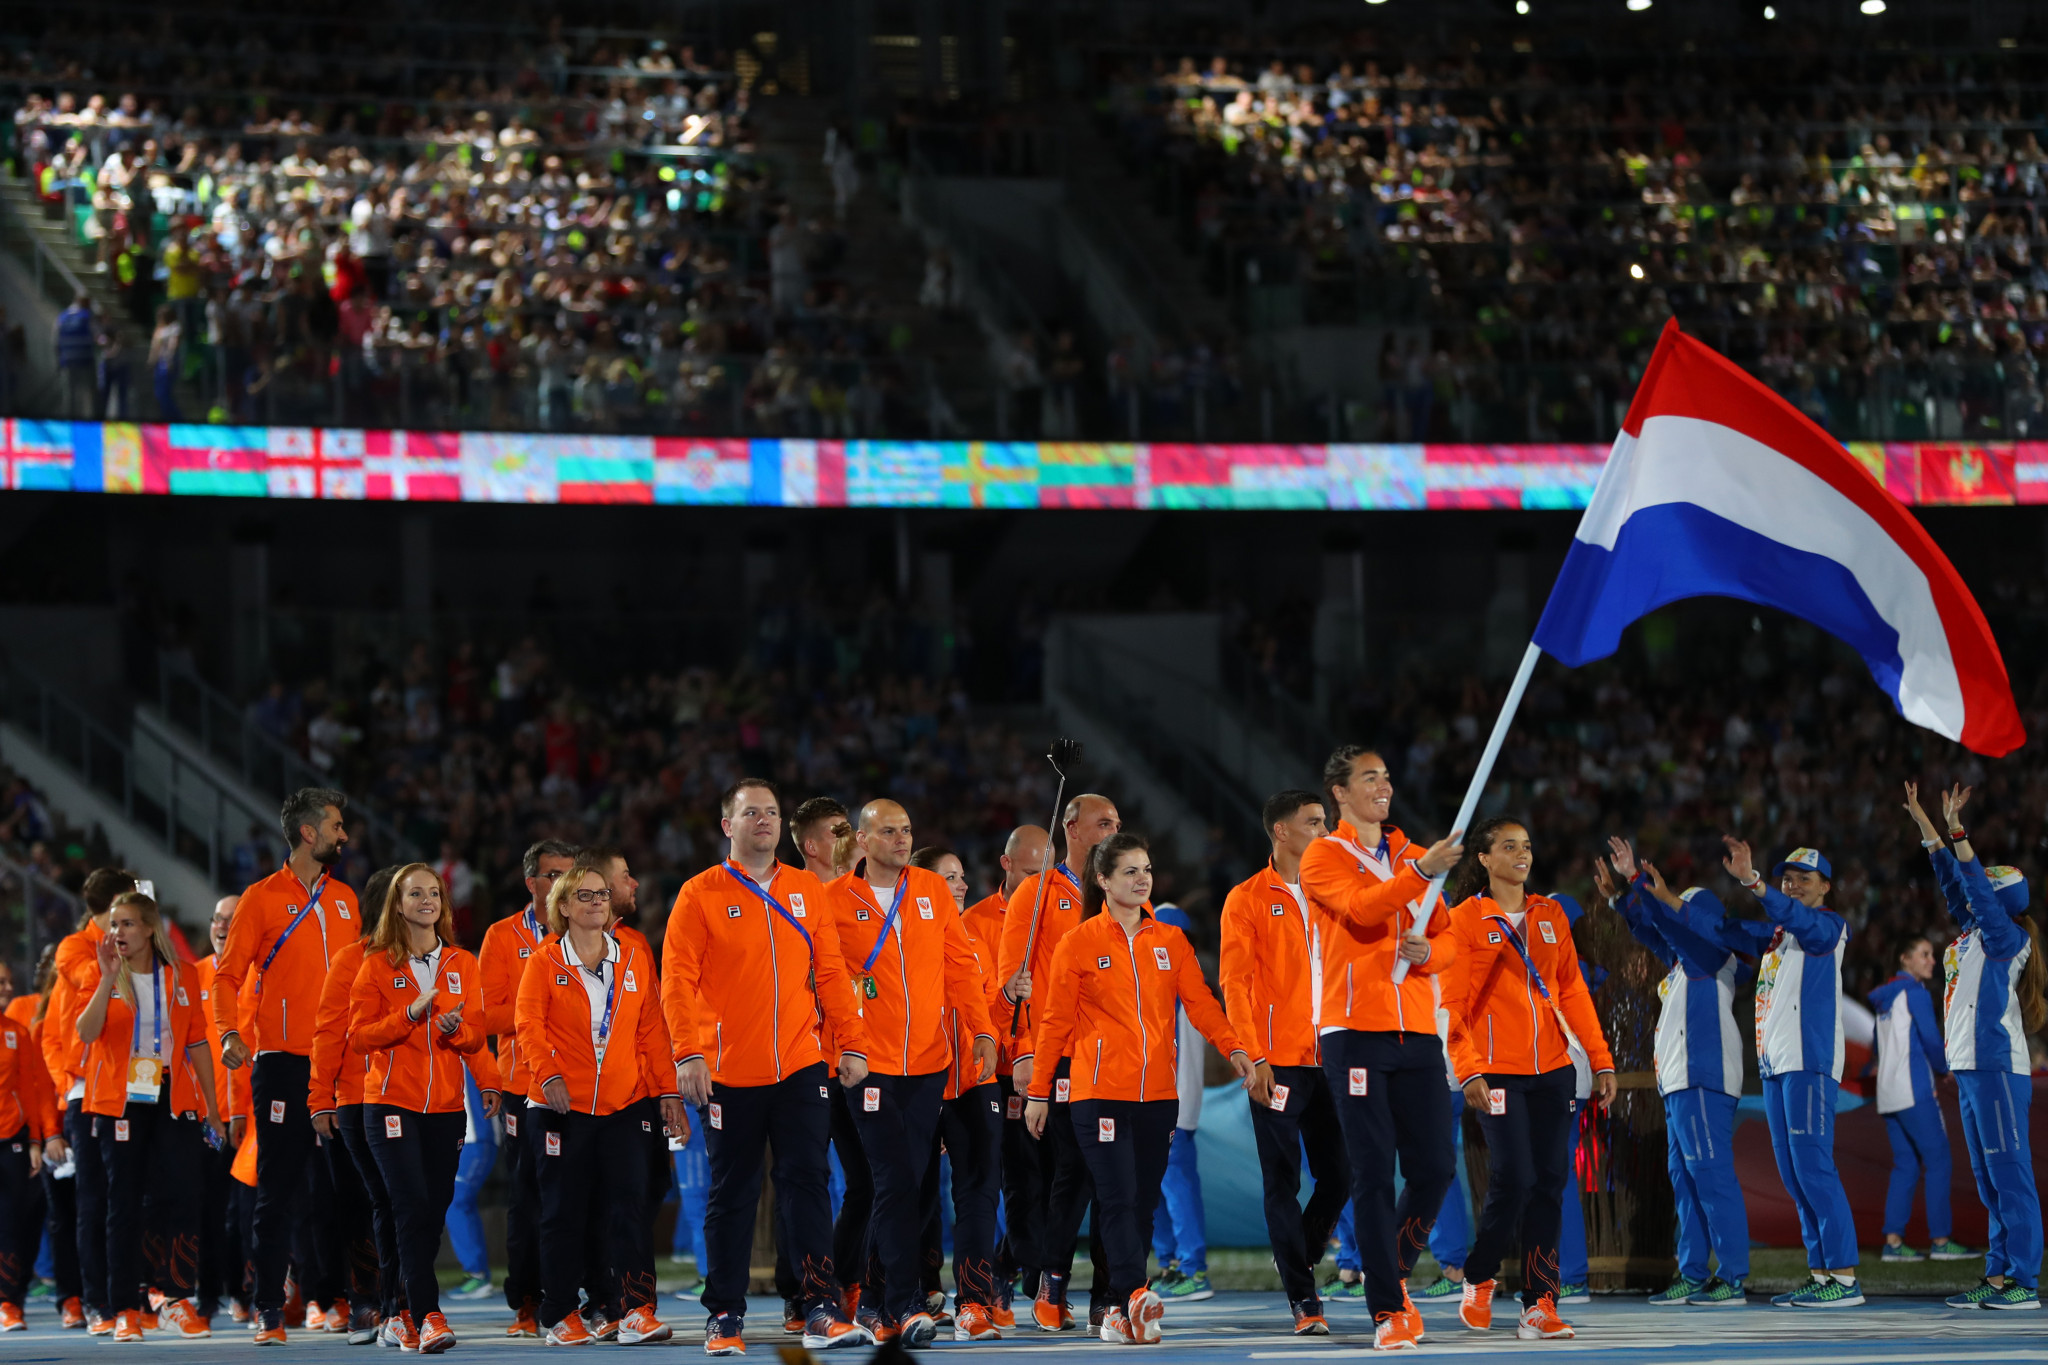 Dutch Olympic Committee updates The Good Sports Governance Code after 15 years